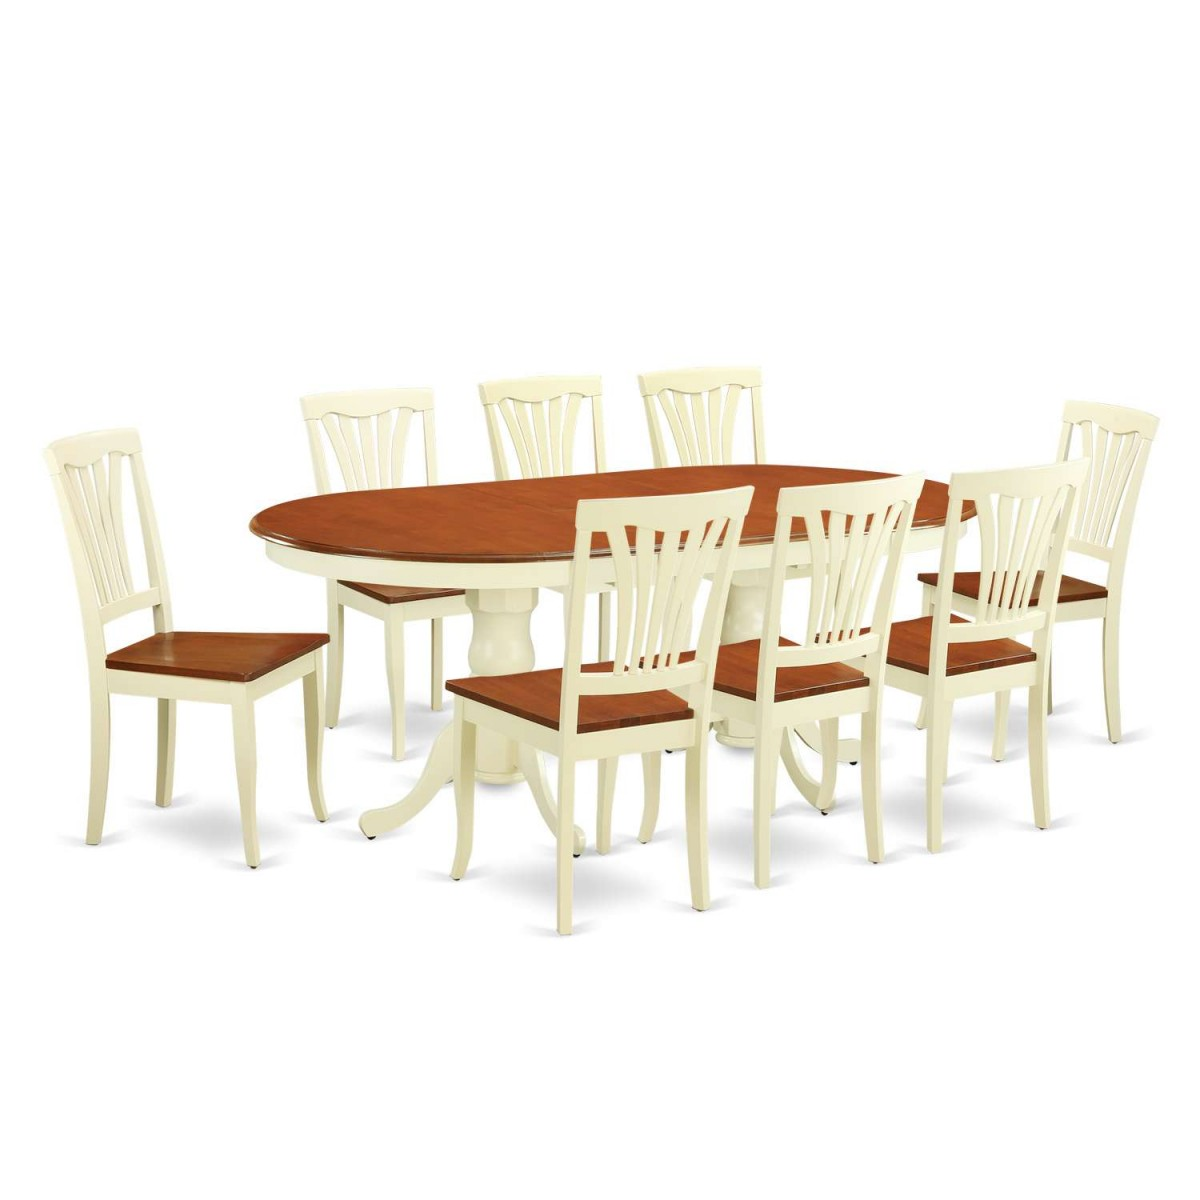 9 Piece Dining Table Set For 8 Dining Room Table With 8: East West Furniture Plainville 9 Piece Dining Set